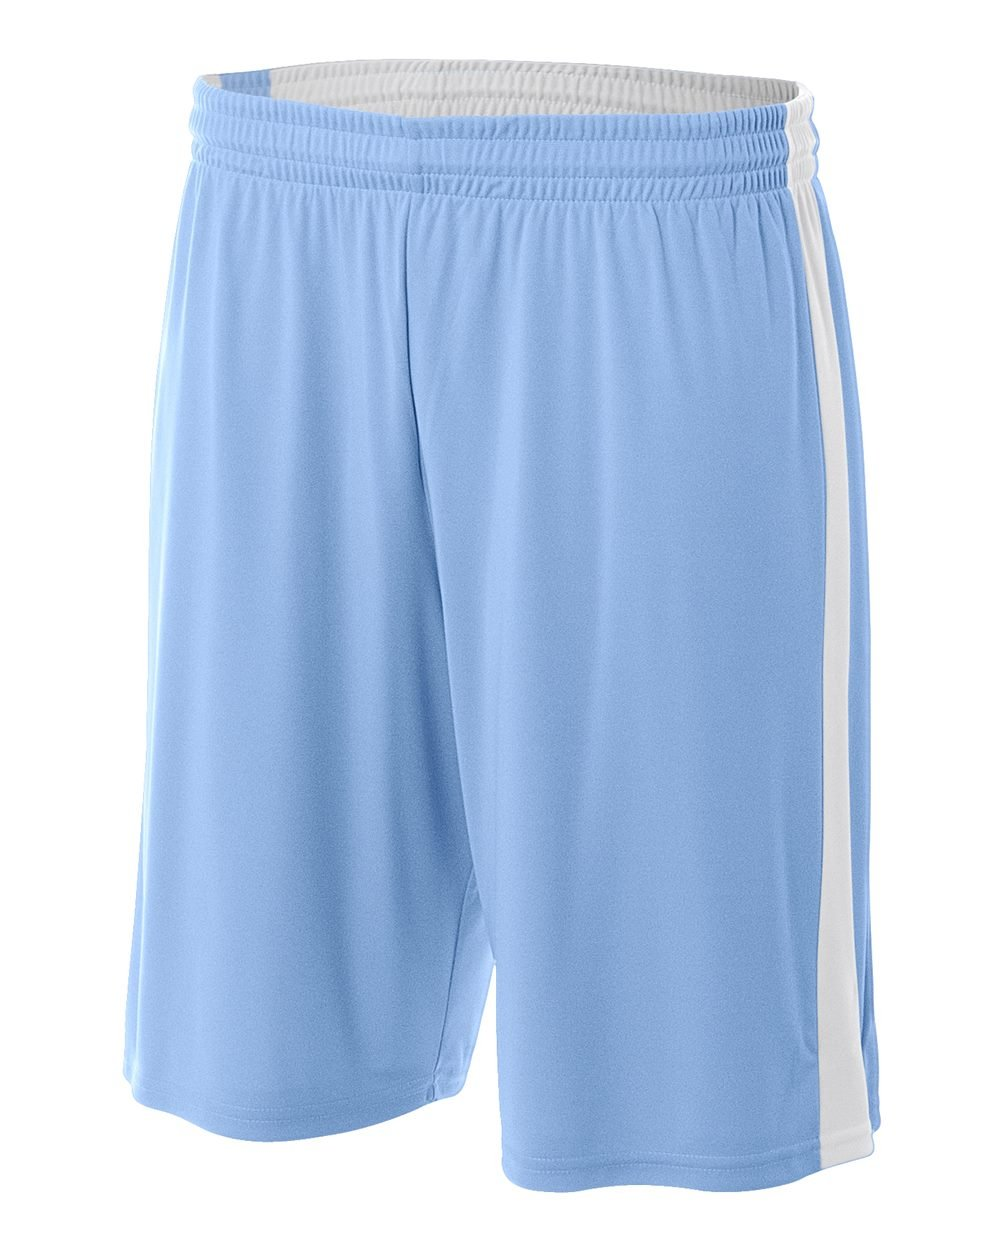 8f1a4513c Amazon.com   Basketball Reversible Two-Color Side Panel Shorts (Youth